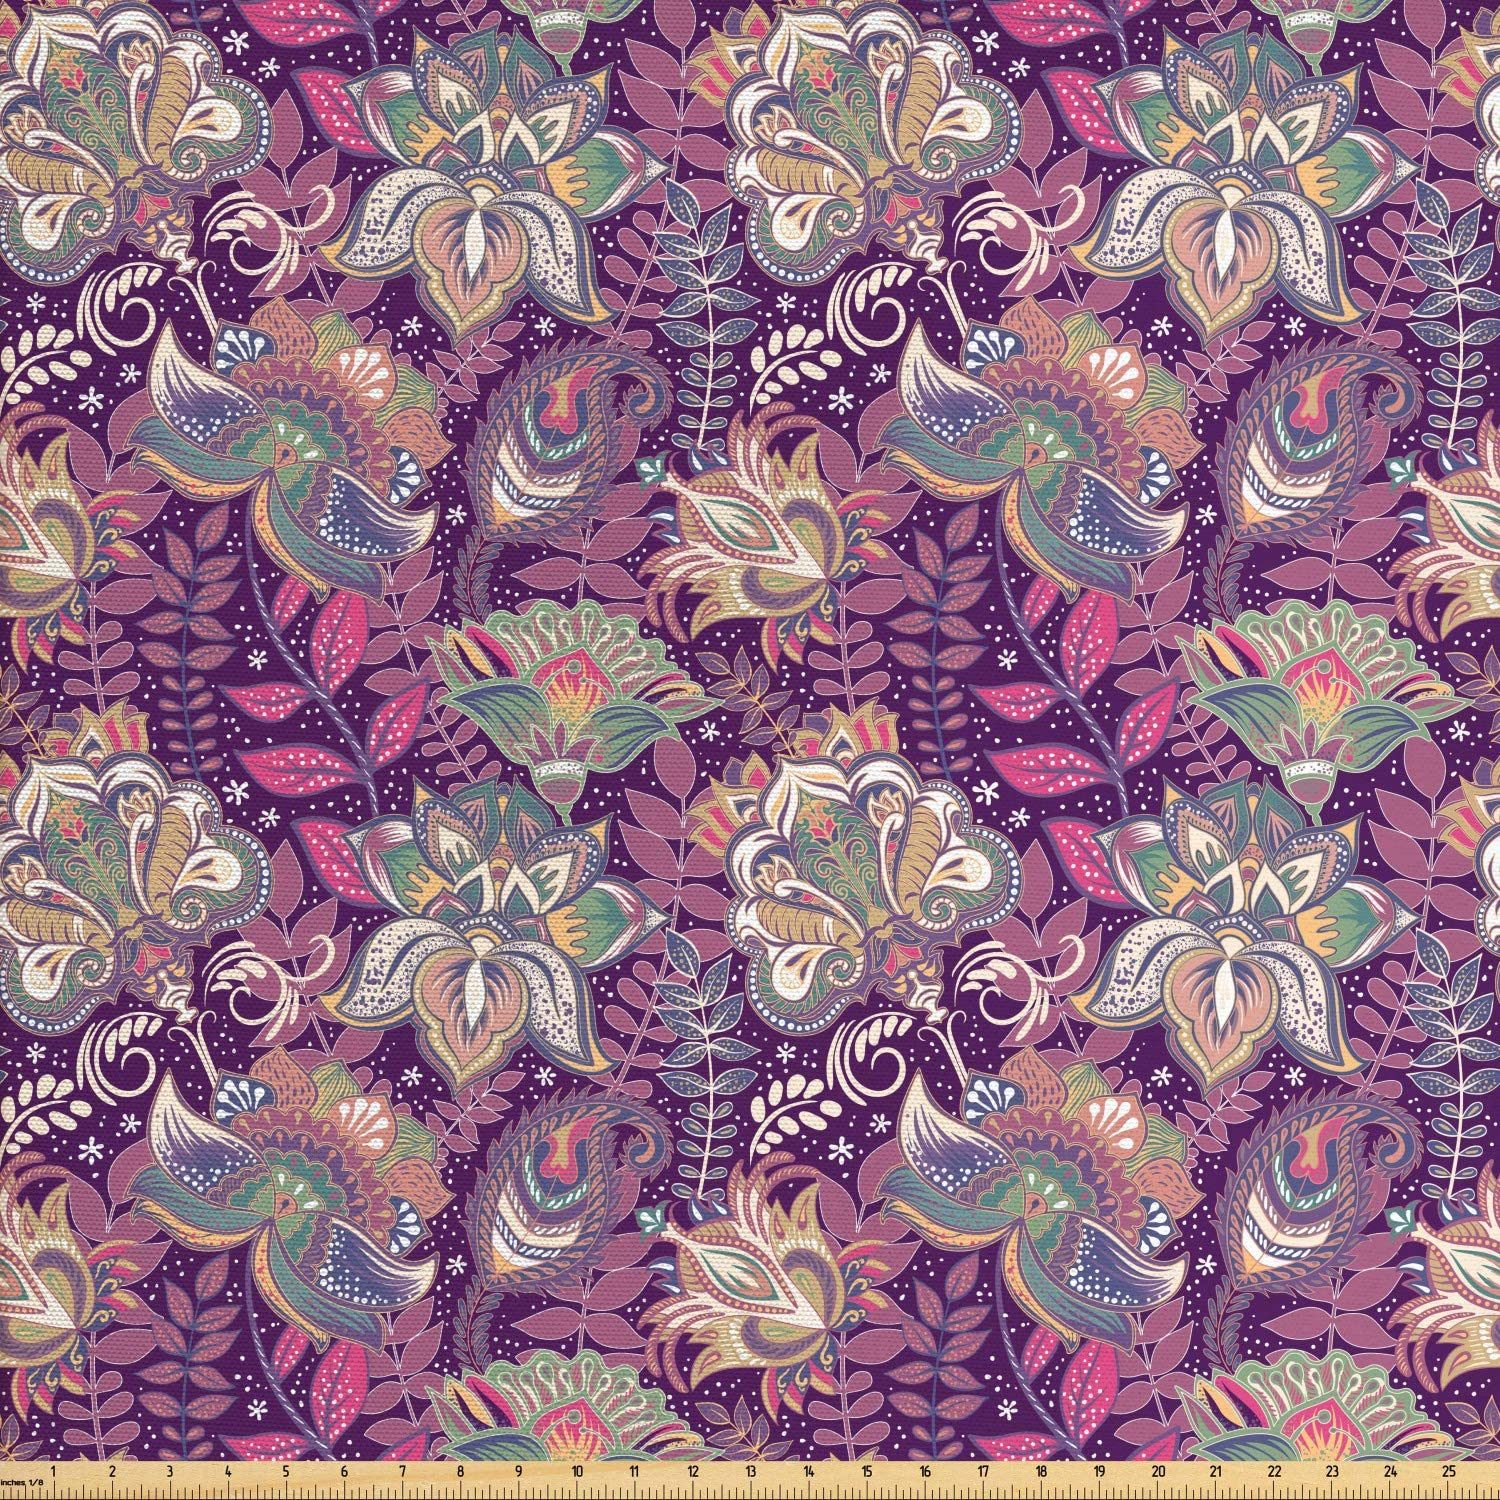 Ambesonne Floral Fabric by The Yard, Vibrant Flowers with Mehndi Style Romantic Ornamental Petals Paisley Design, Decorative Fabric for Upholstery and Home Accents, 1 Yard, Mauve Green